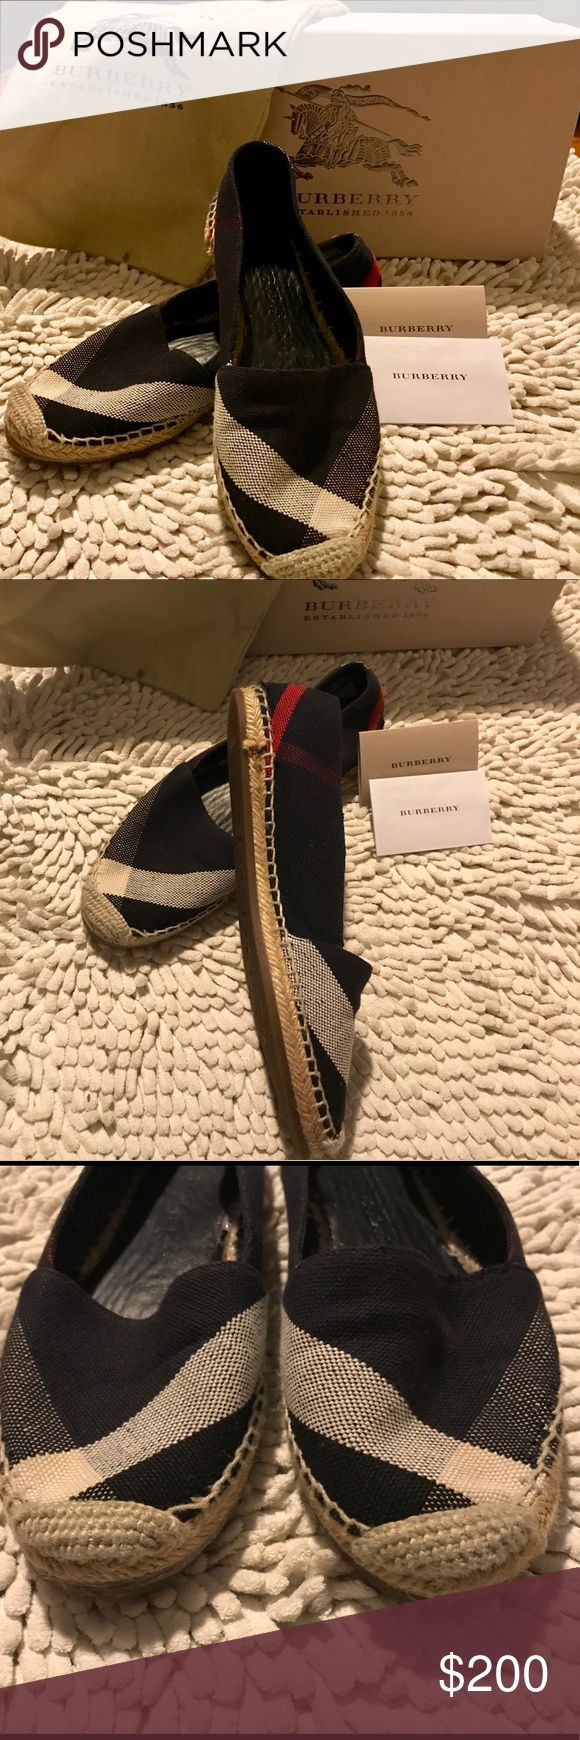 Burberry Espadrille The iconic check print Burberry Hodgeson Espadrille Flat is an easy breezy slip on style. It has rubber sole. Very cute  to pair with any outfit💙 Authentic. Dust bag, purchase card, and box included.👍🏻 Burberry Shoes Espadrilles